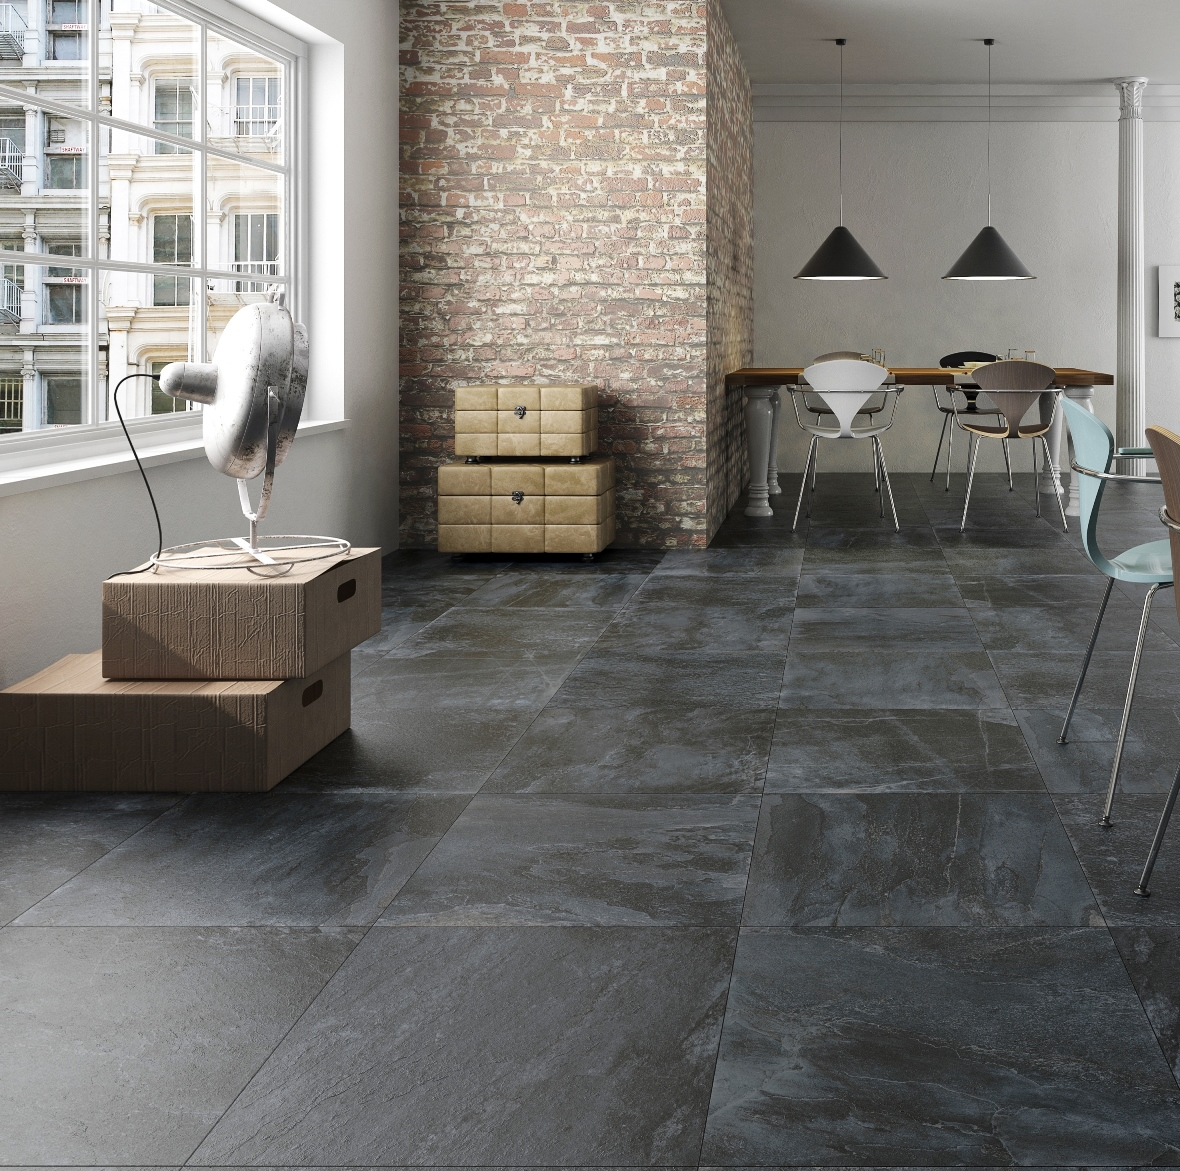 Kitchen Tiles From Tile Mountain: Tile Mountain's Latest Flooring Trends Revealed…